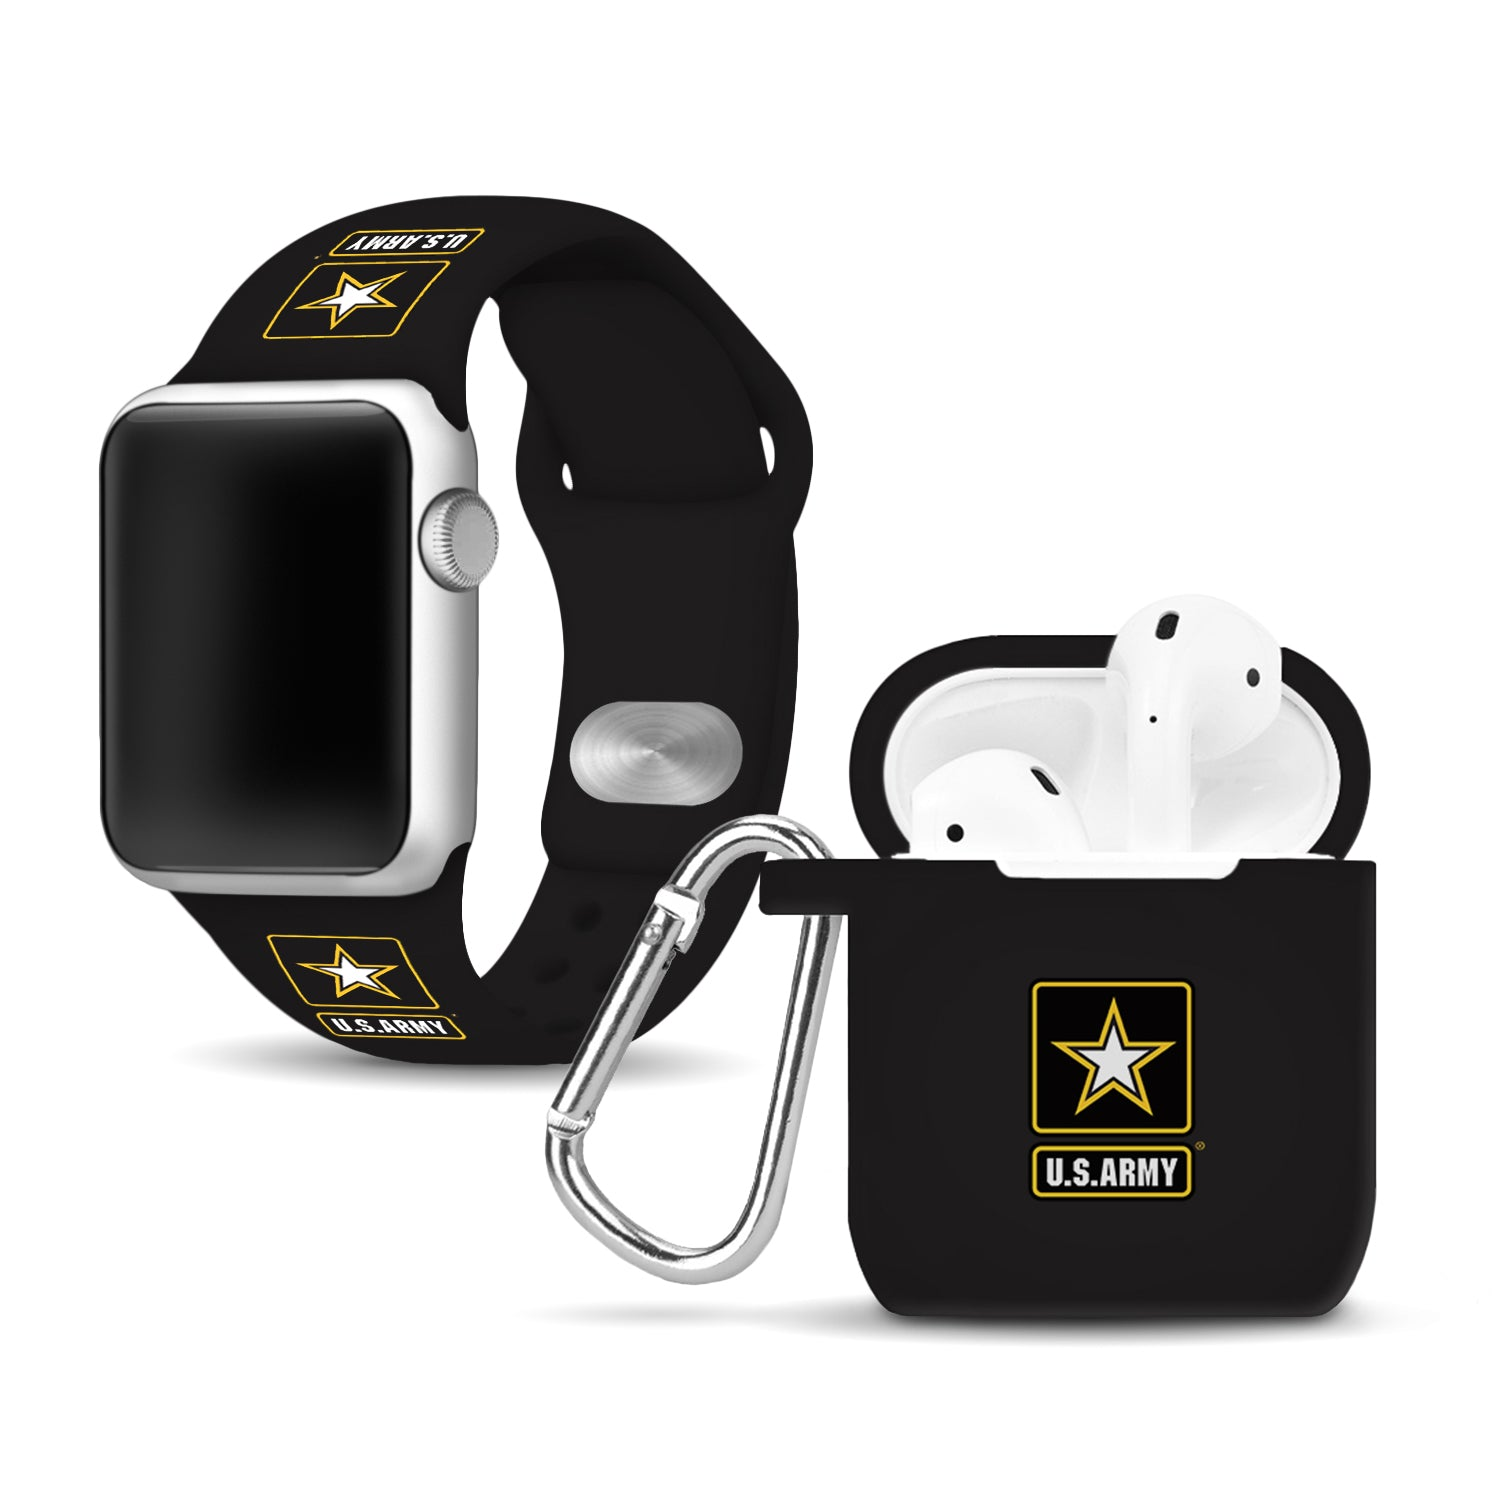 U.S. Army Apple Combo Package - AffinityBands